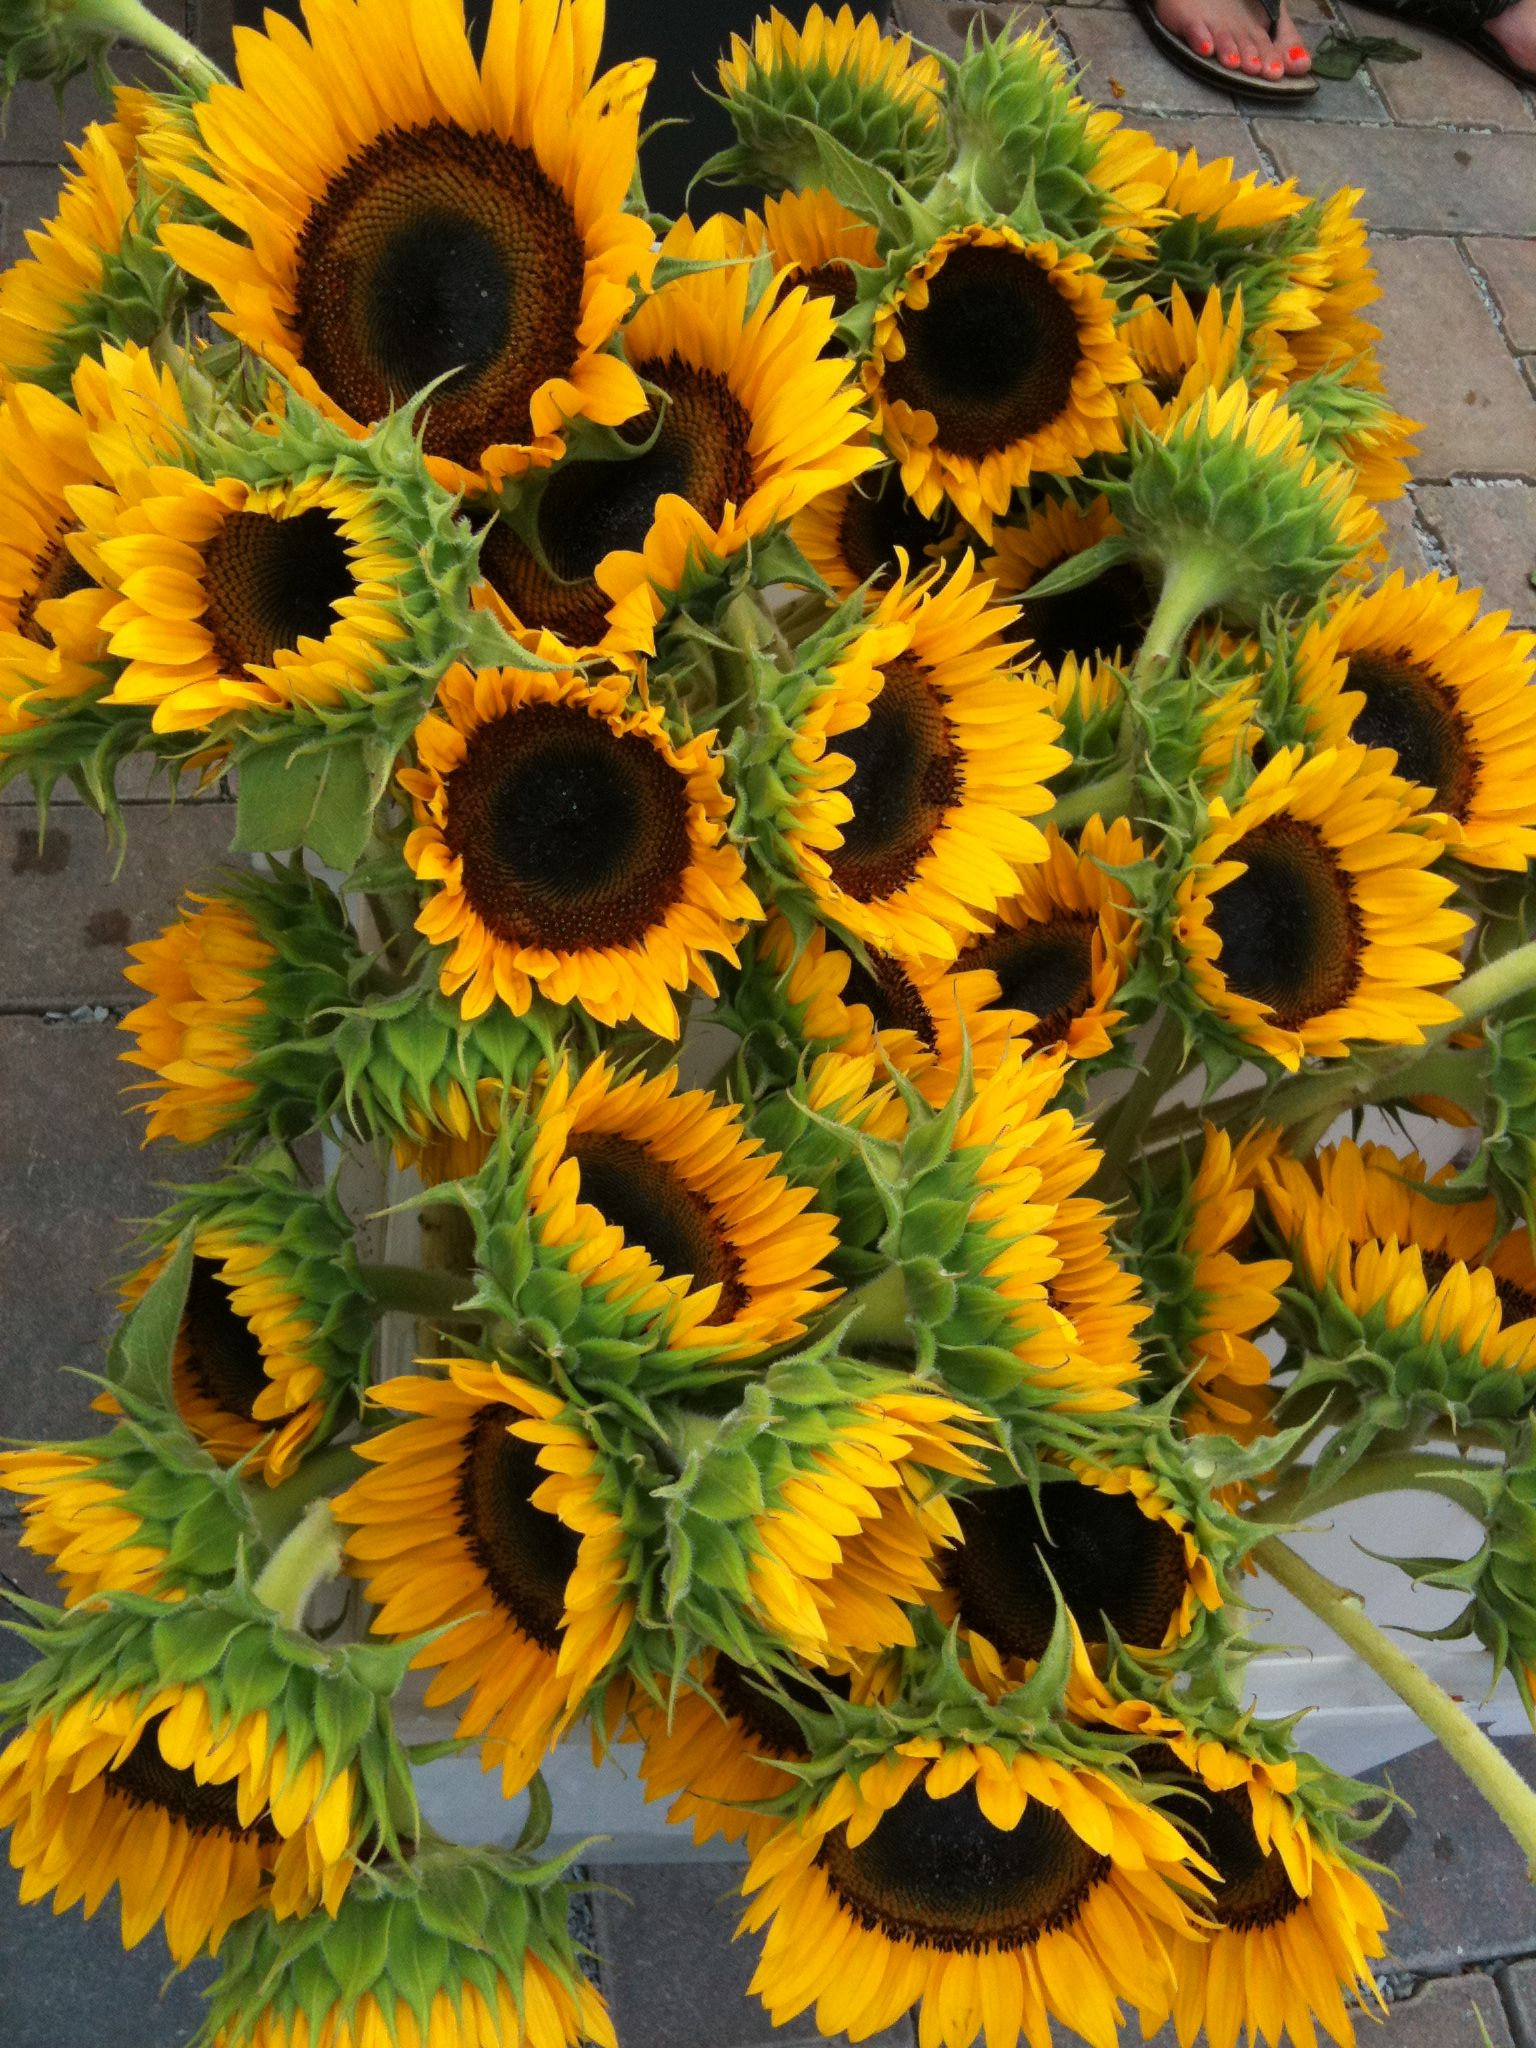 Beautiful sunflowers at the farmers market in carmel indiana dc beautiful sunflowers at the farmers market in carmel indiana izmirmasajfo